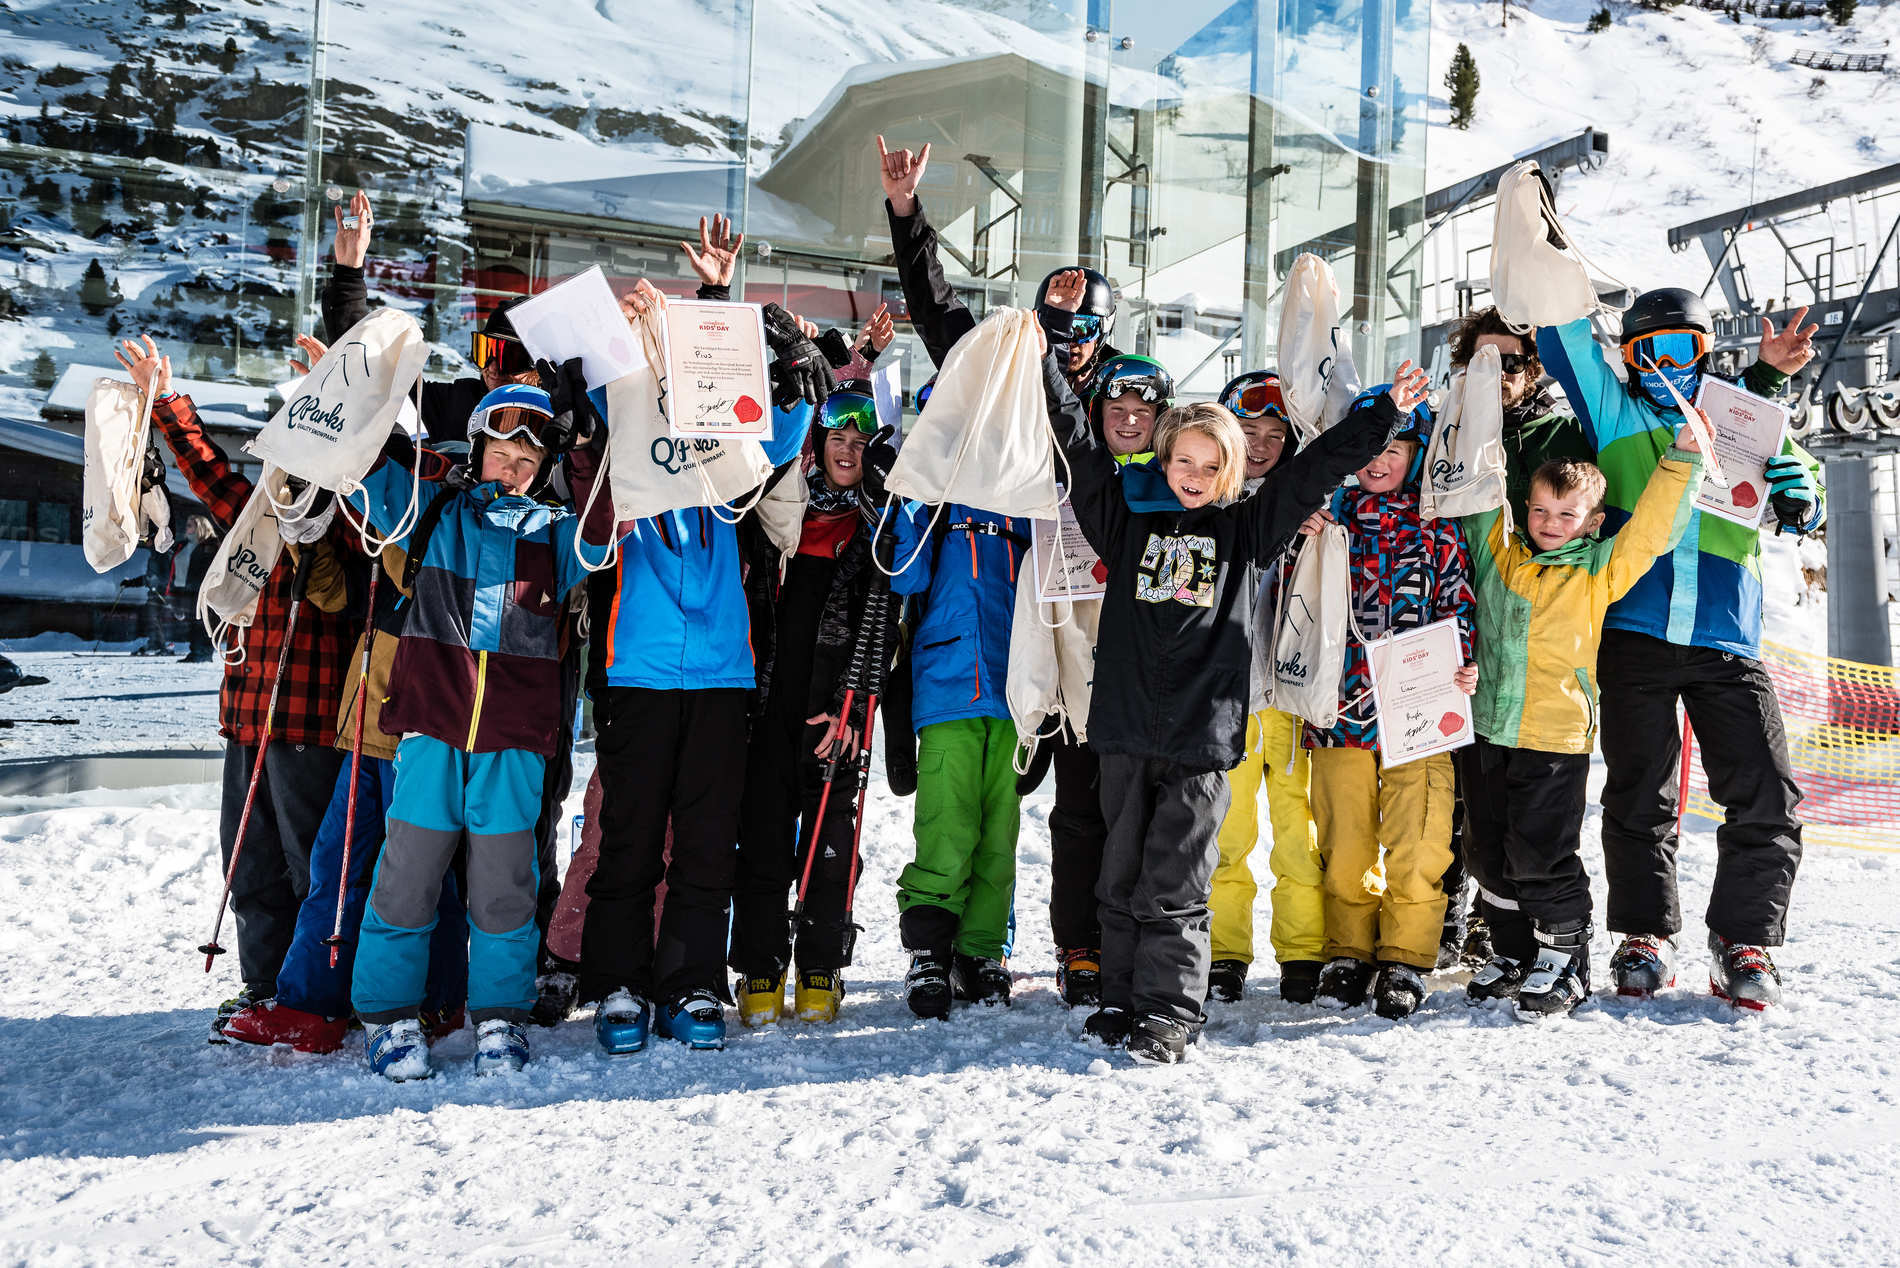 obergurgl 15 02 2019 lifestyle fs sb christian riefenberg qparks 38